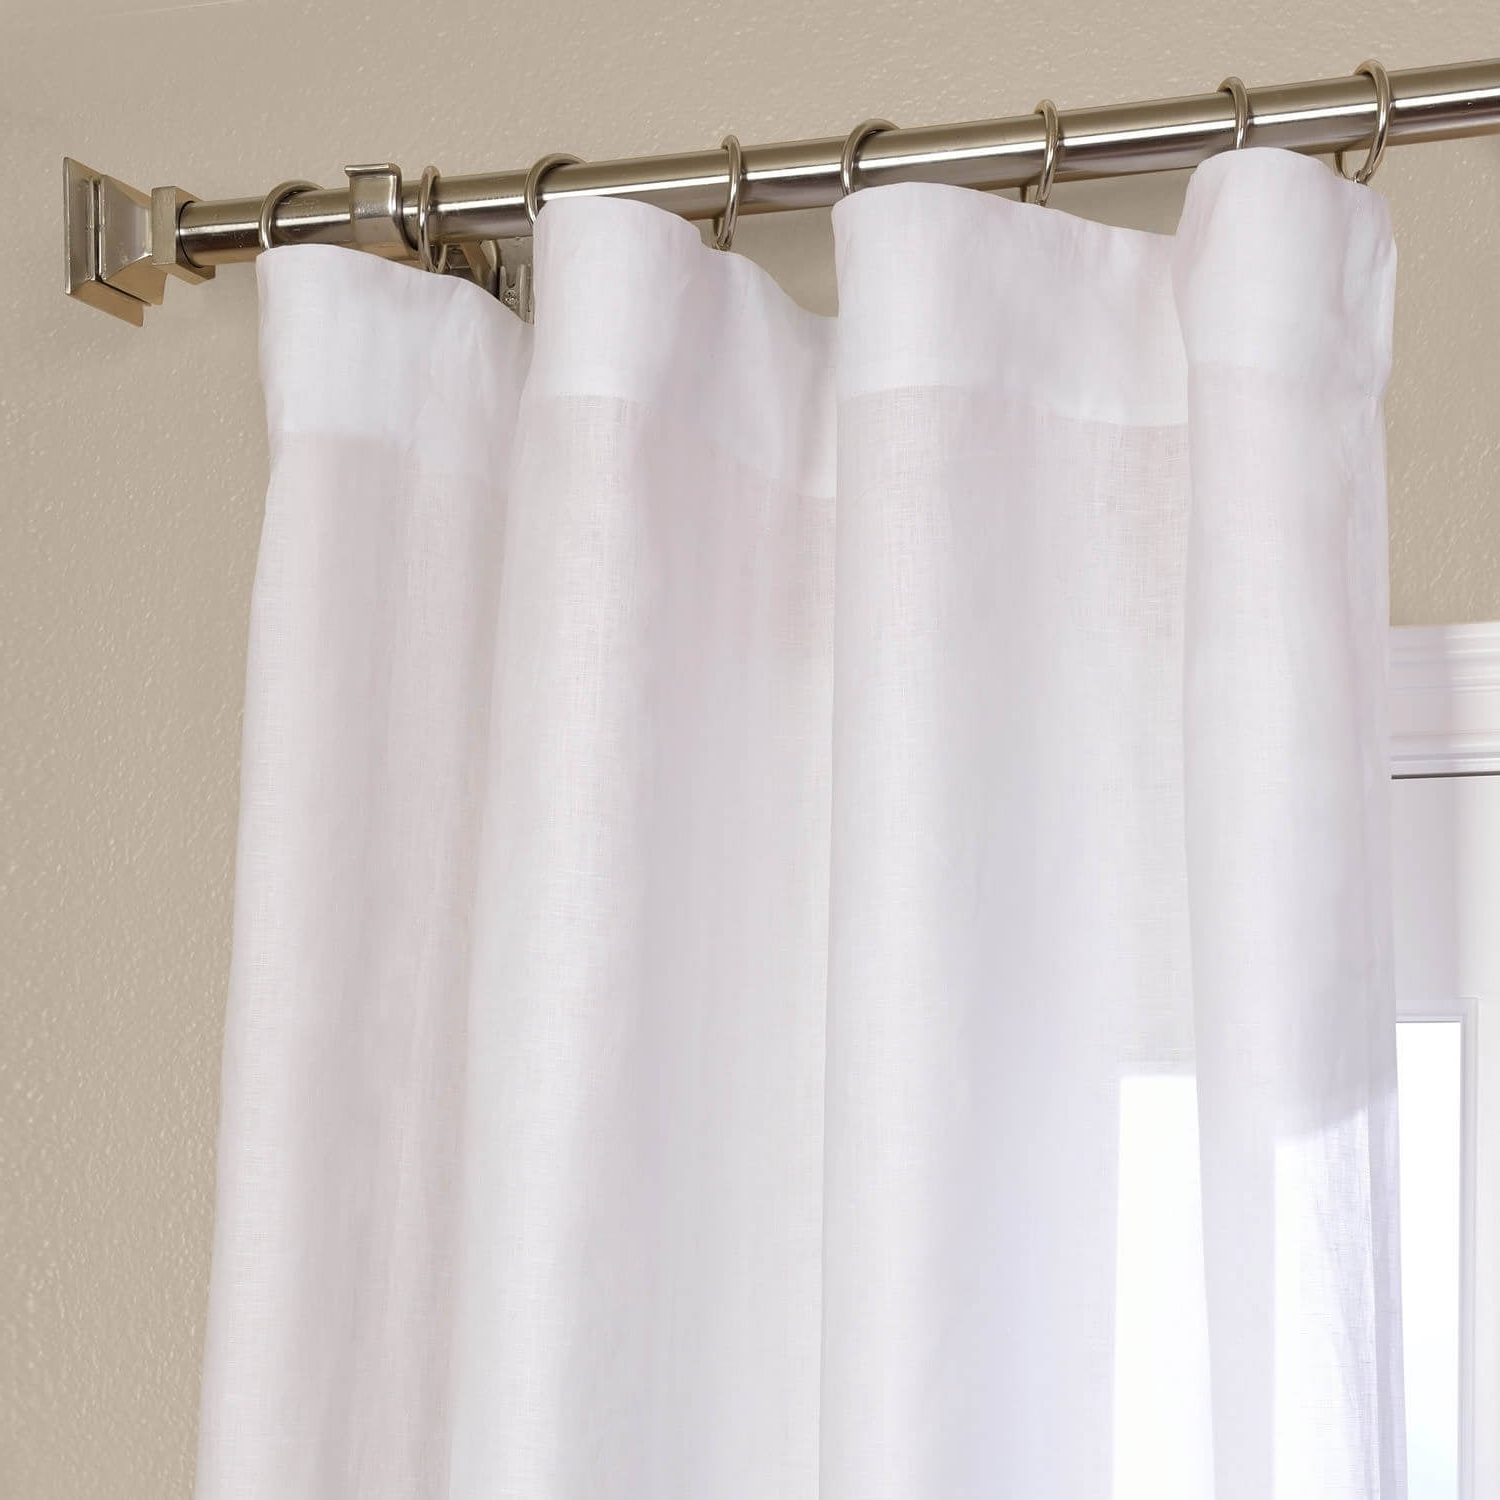 Best And Newest Signature French Linen Curtain Panels With Exclusive Fabrics Signature French Linen Curtain Panel (View 3 of 20)